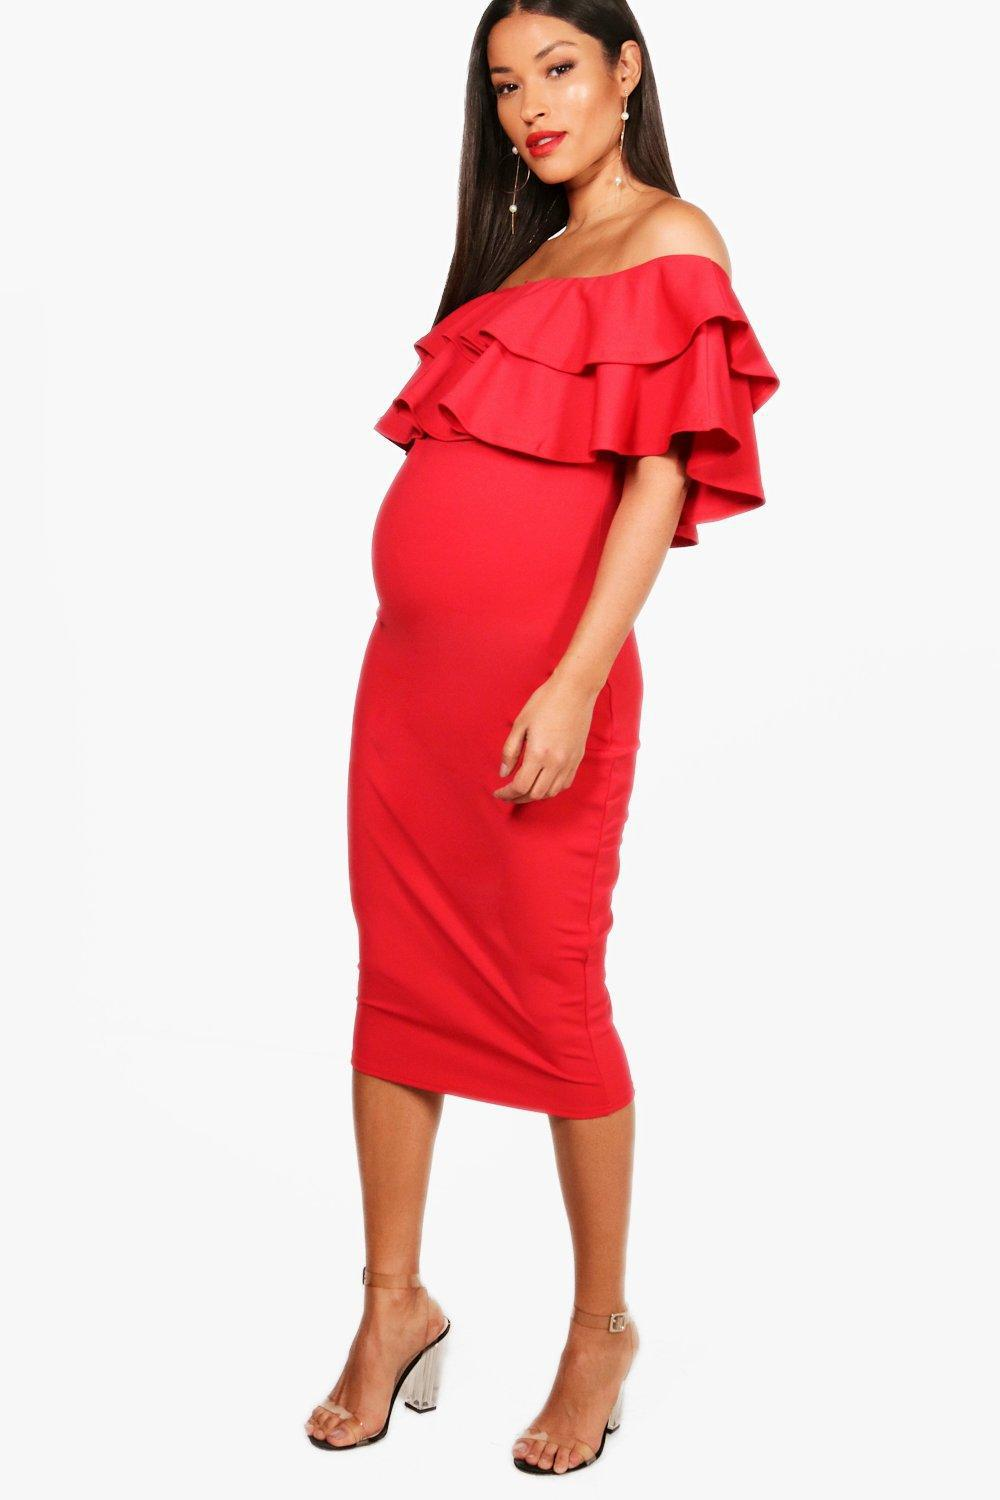 5c7cd699d11d6 Lyst - Boohoo Maternity Ruffle Off The Shoulder Midi Dress in Red